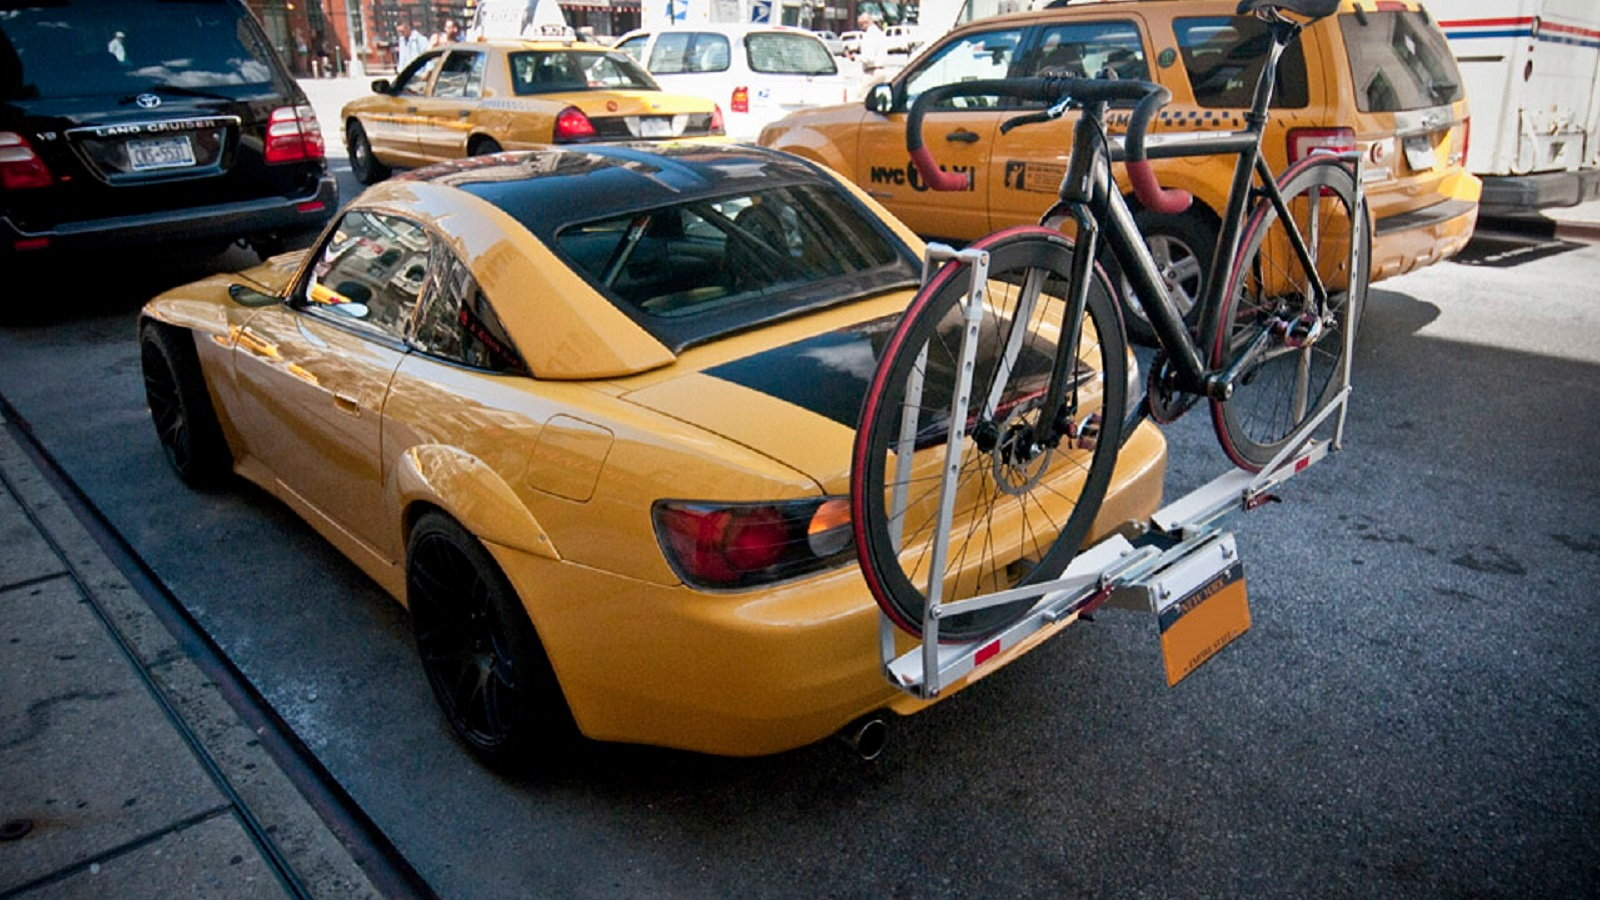 Towing A Bike